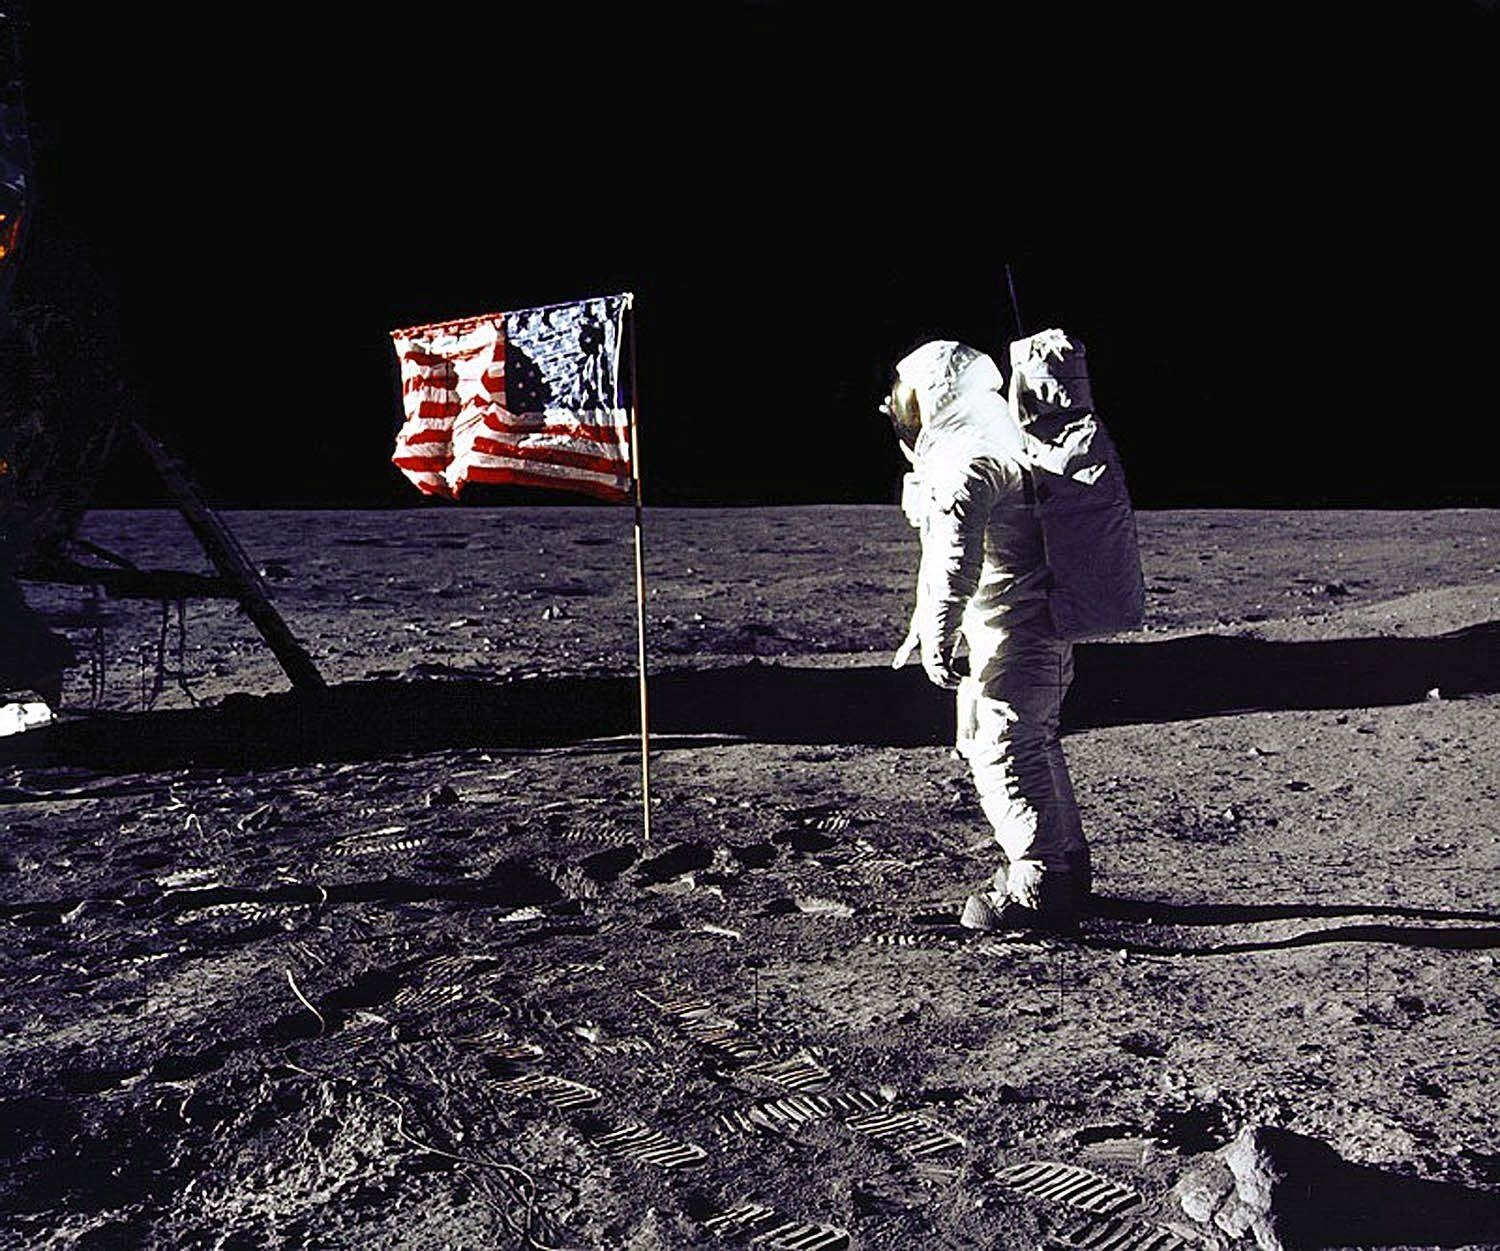 Buzz Aldrin just after planting a flag on the moon